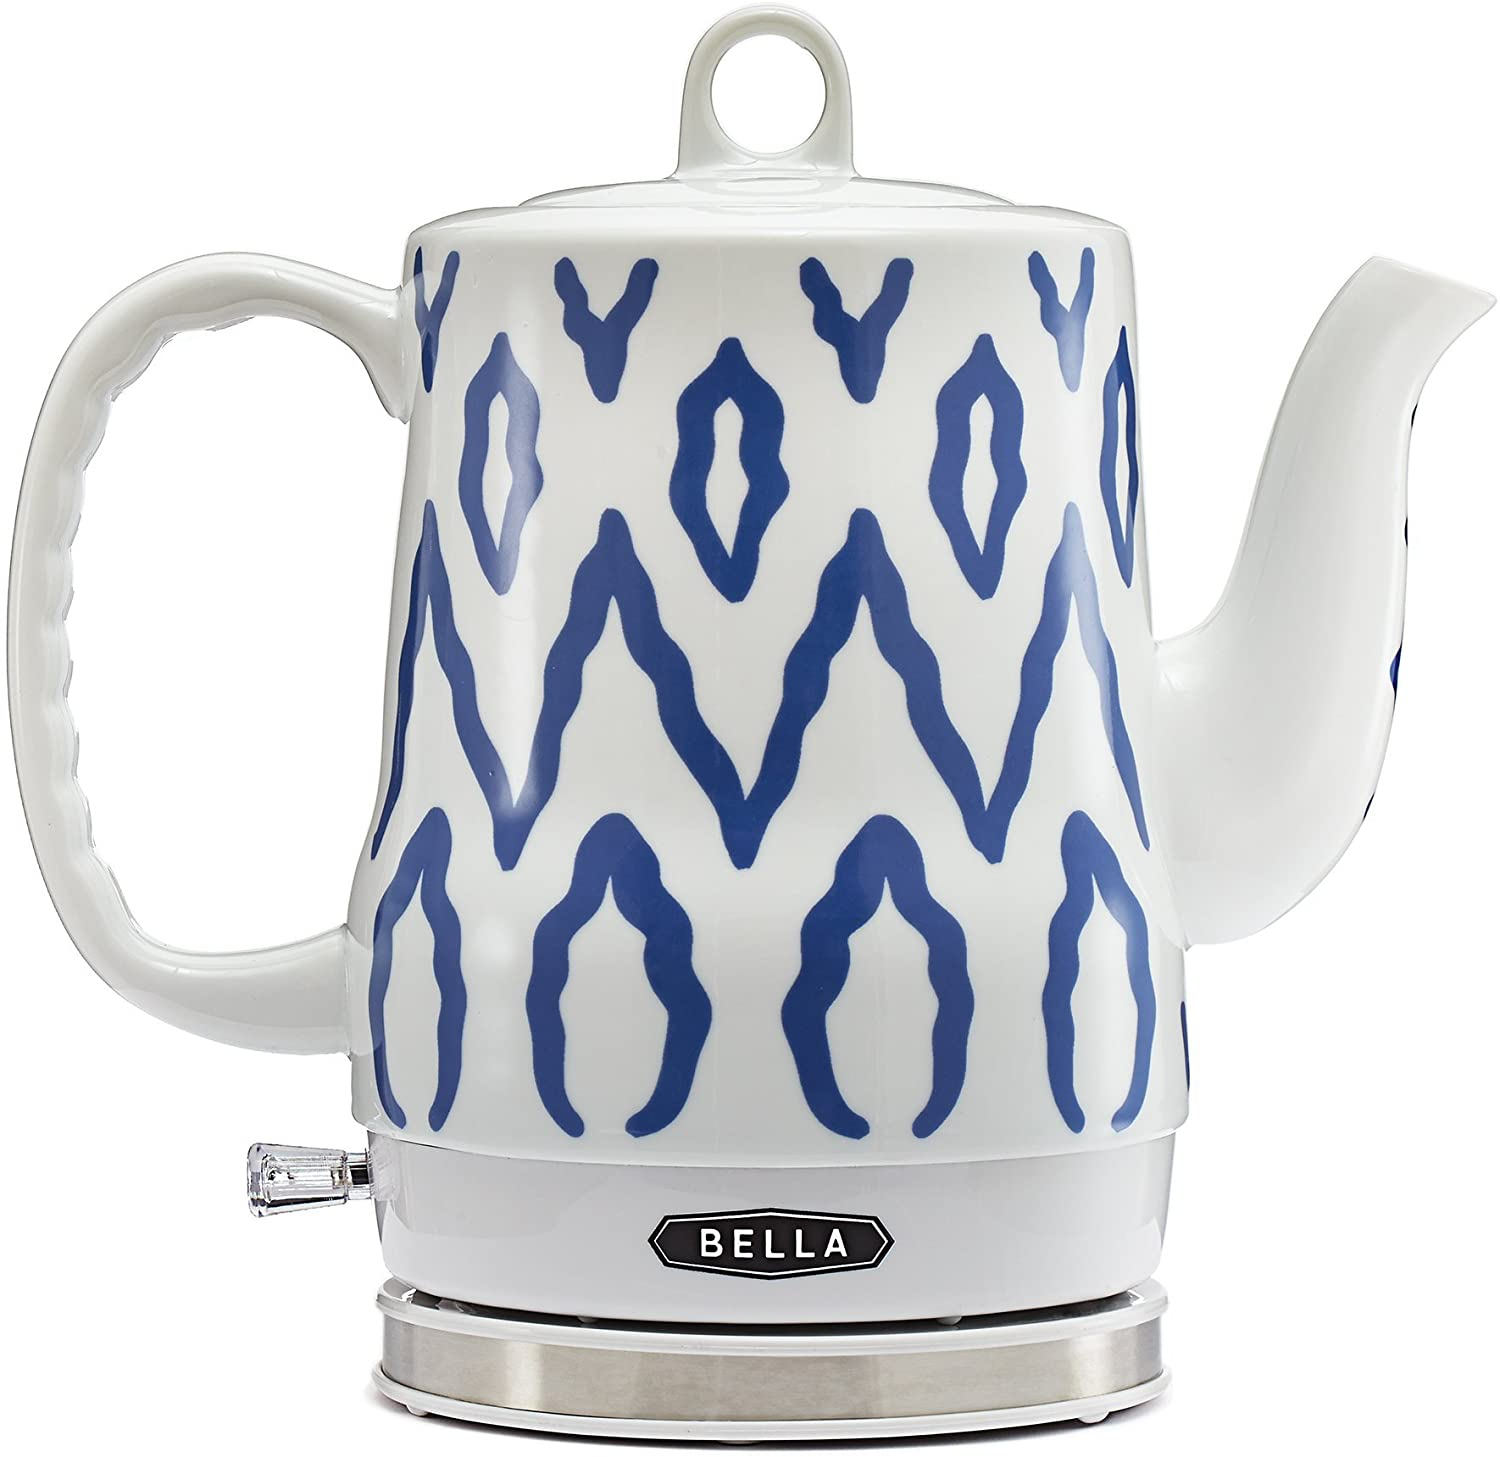 16 Perfect Mother's Day Gift Ideas teapot